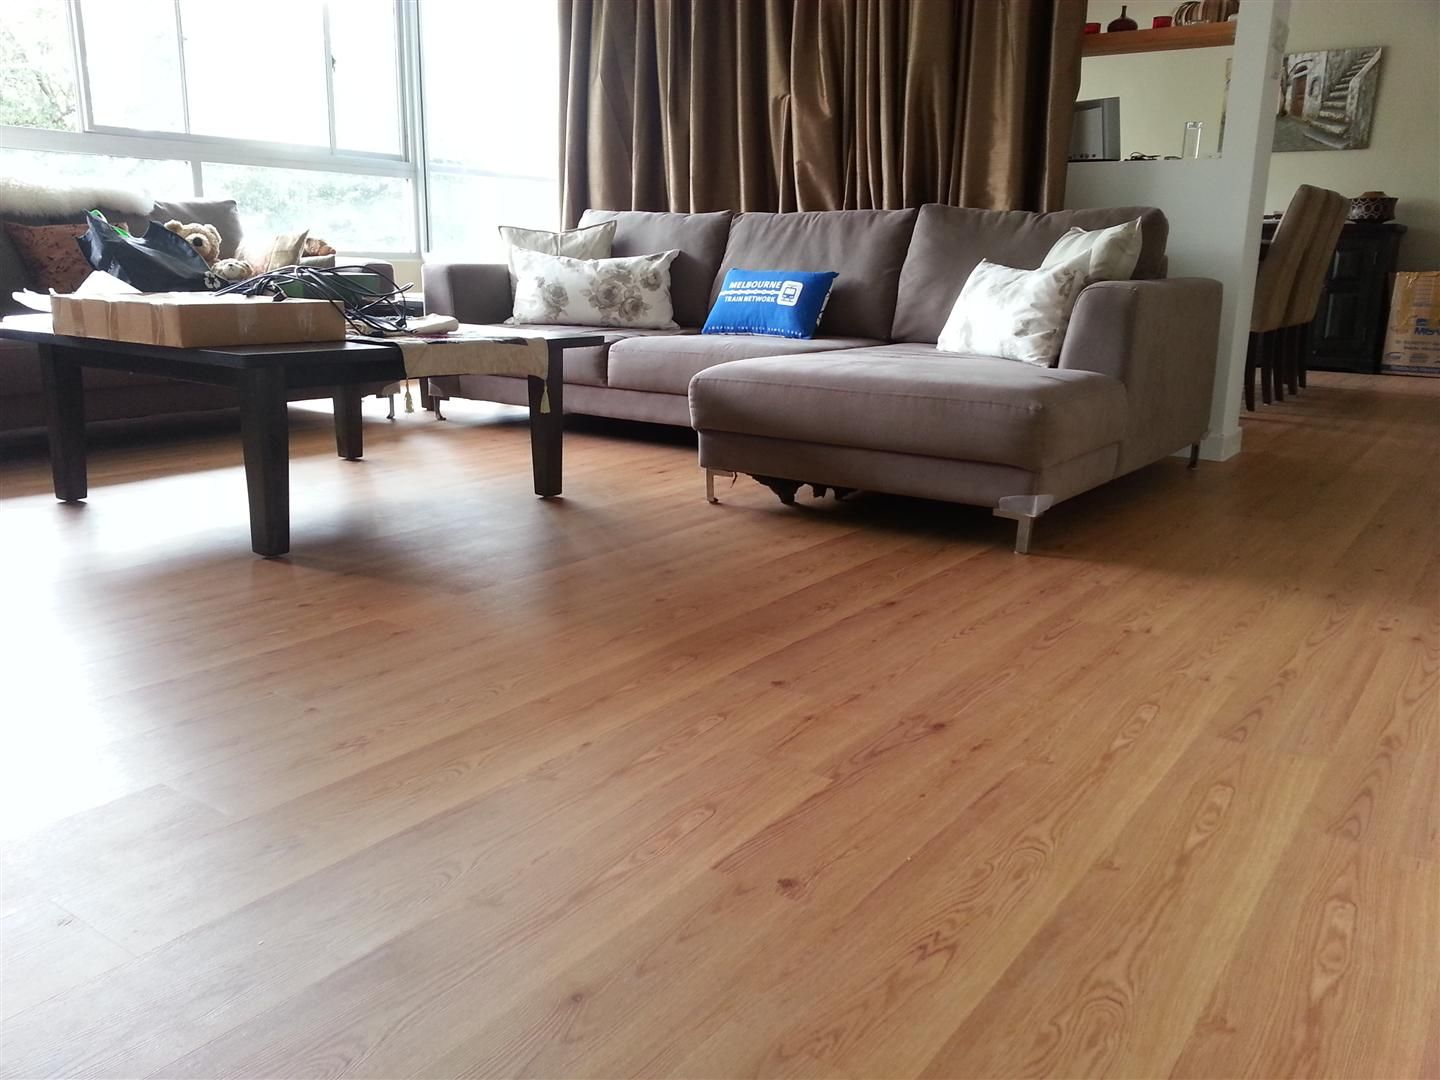 Why Choose Us To Supply & Install Your Vinyl Flooring